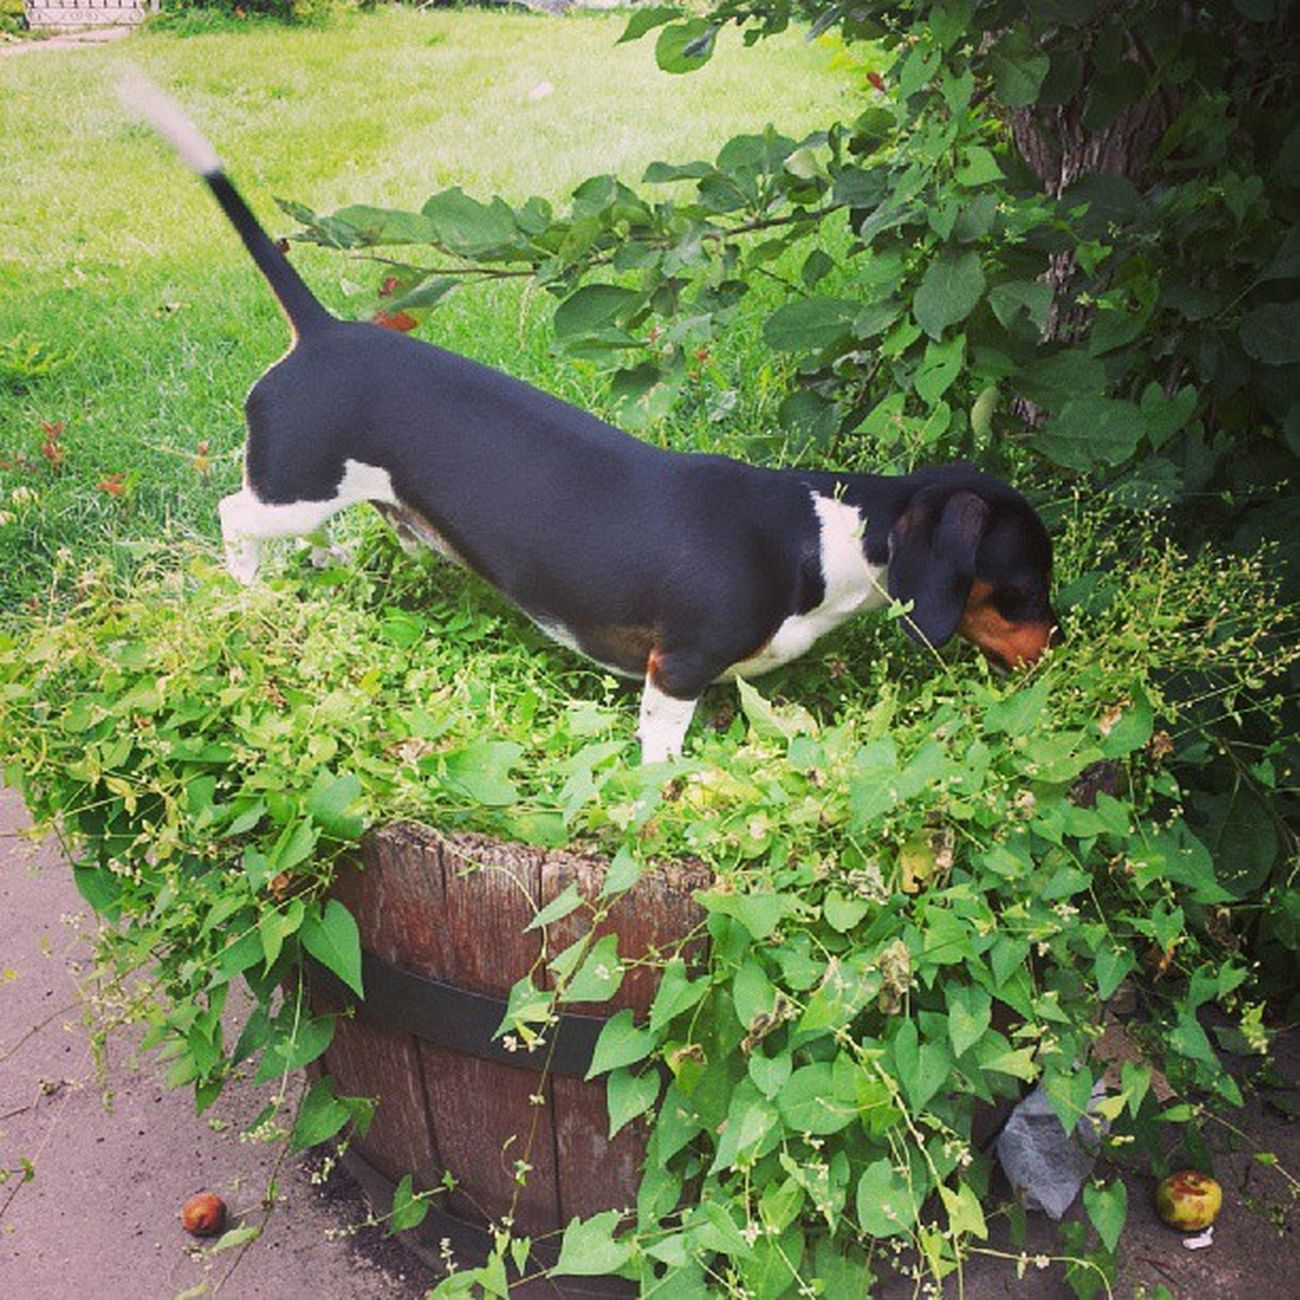 He has an entire yard Weirddogsofinstagram Dogsofinstagram Monster